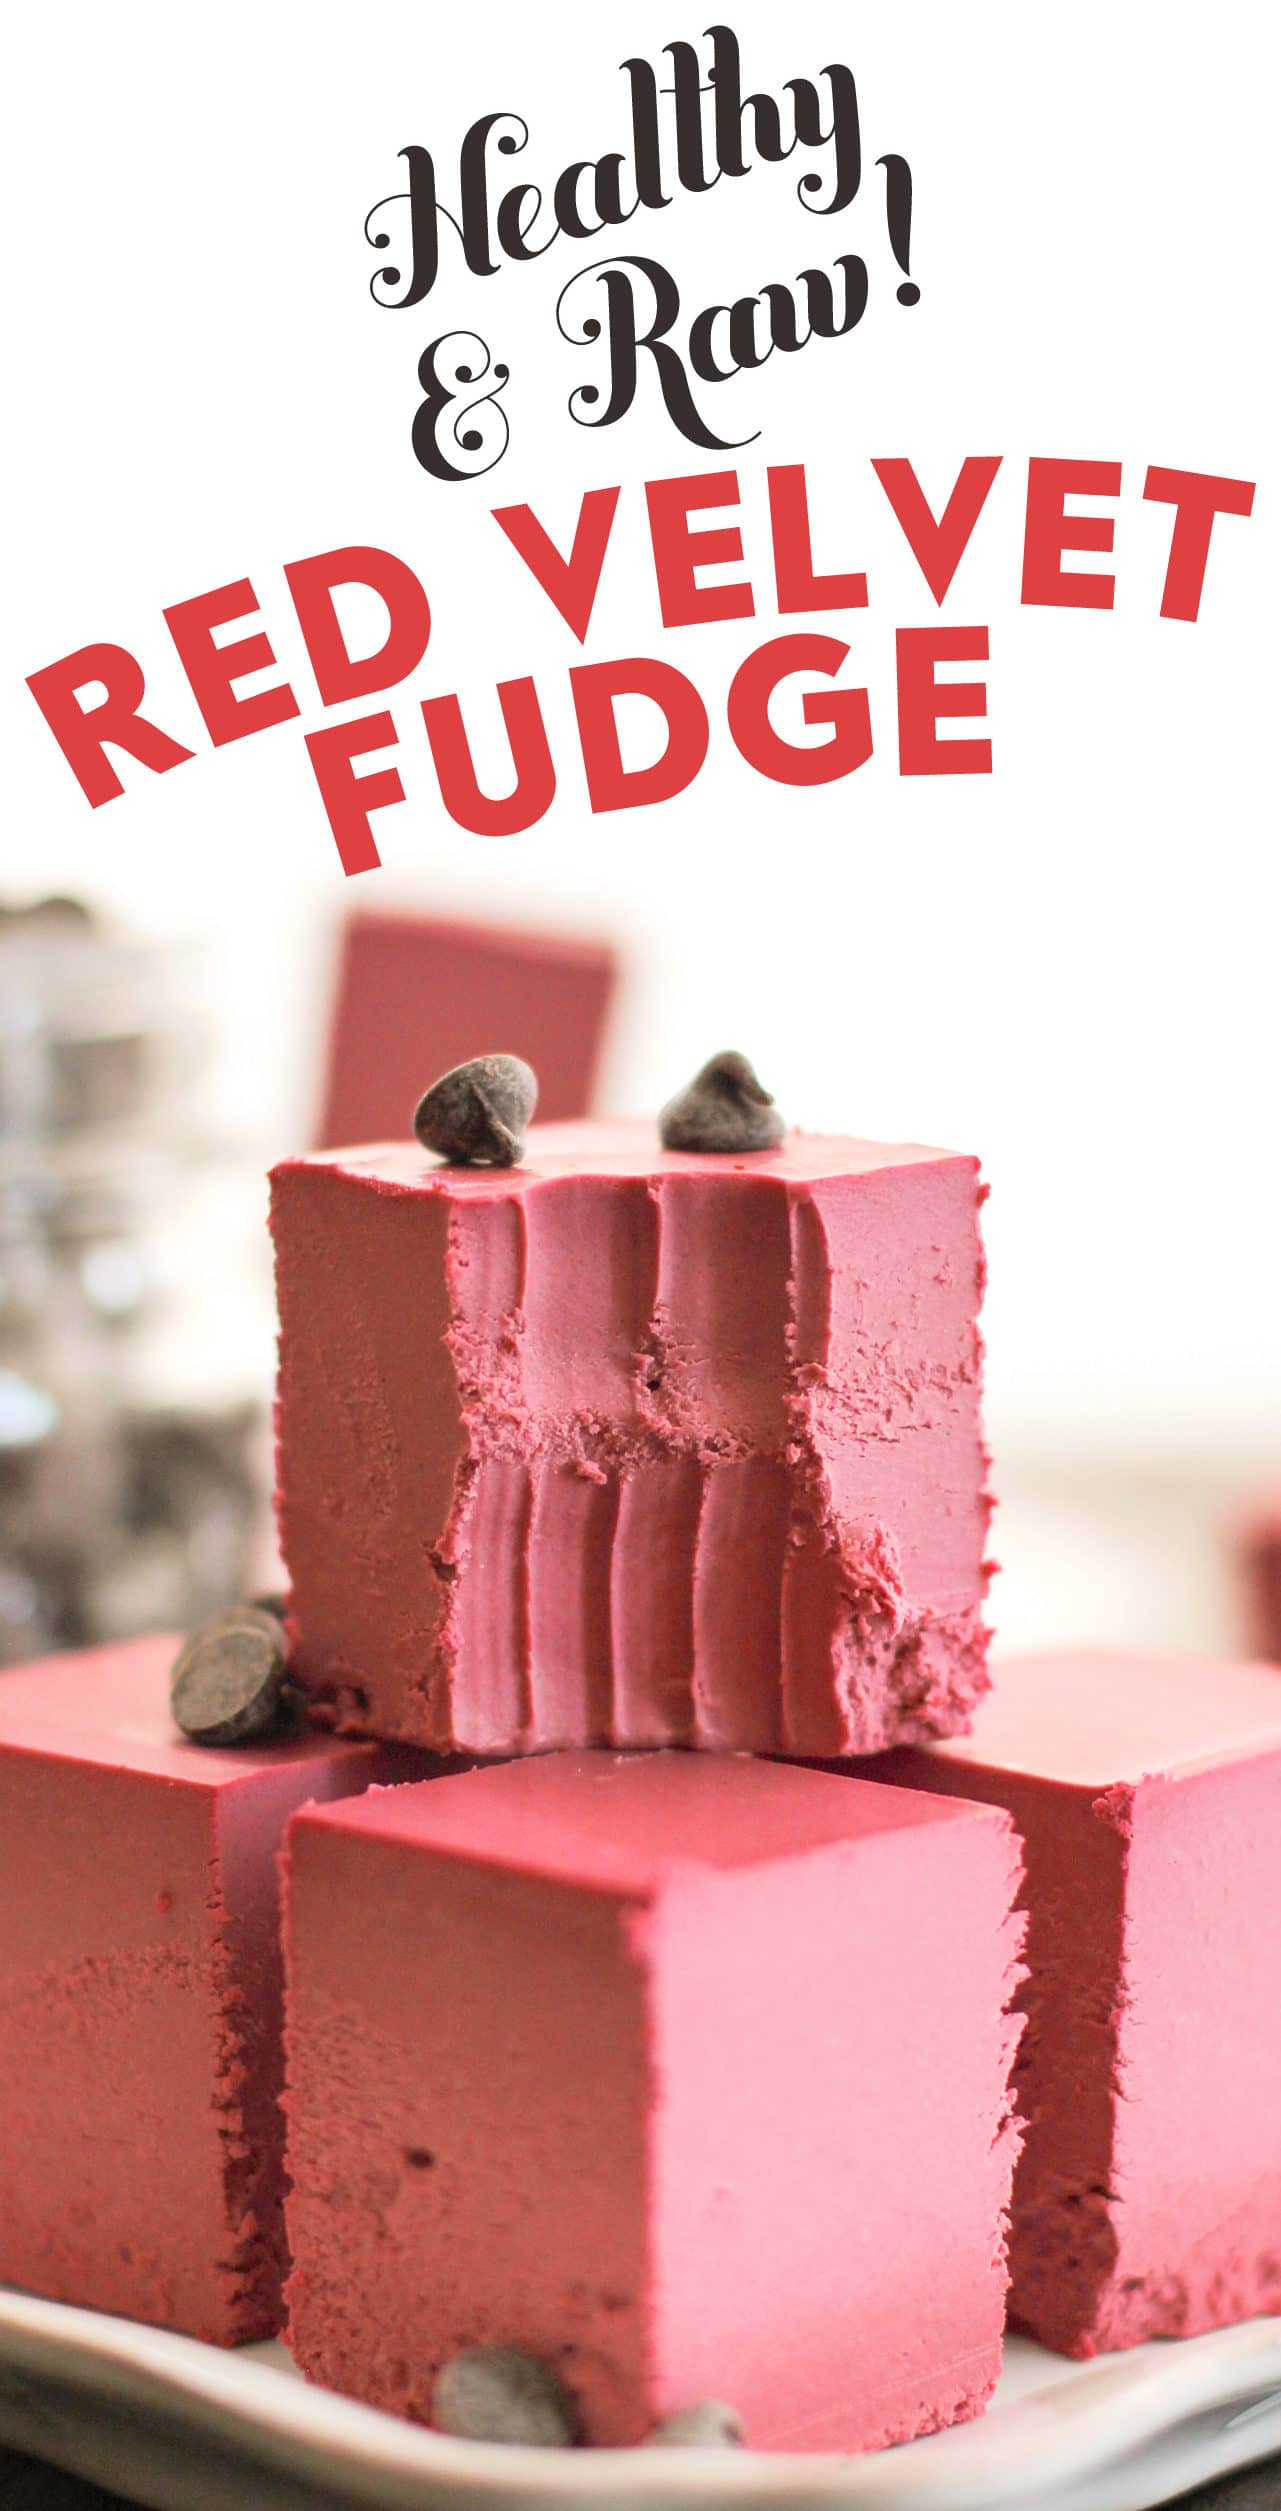 Healthy Raw Red Velvet Fudge (no bake, sugar free, low carb, gluten free, dairy free, vegan) - Healthy Dessert Recipes at Desserts with Benefits